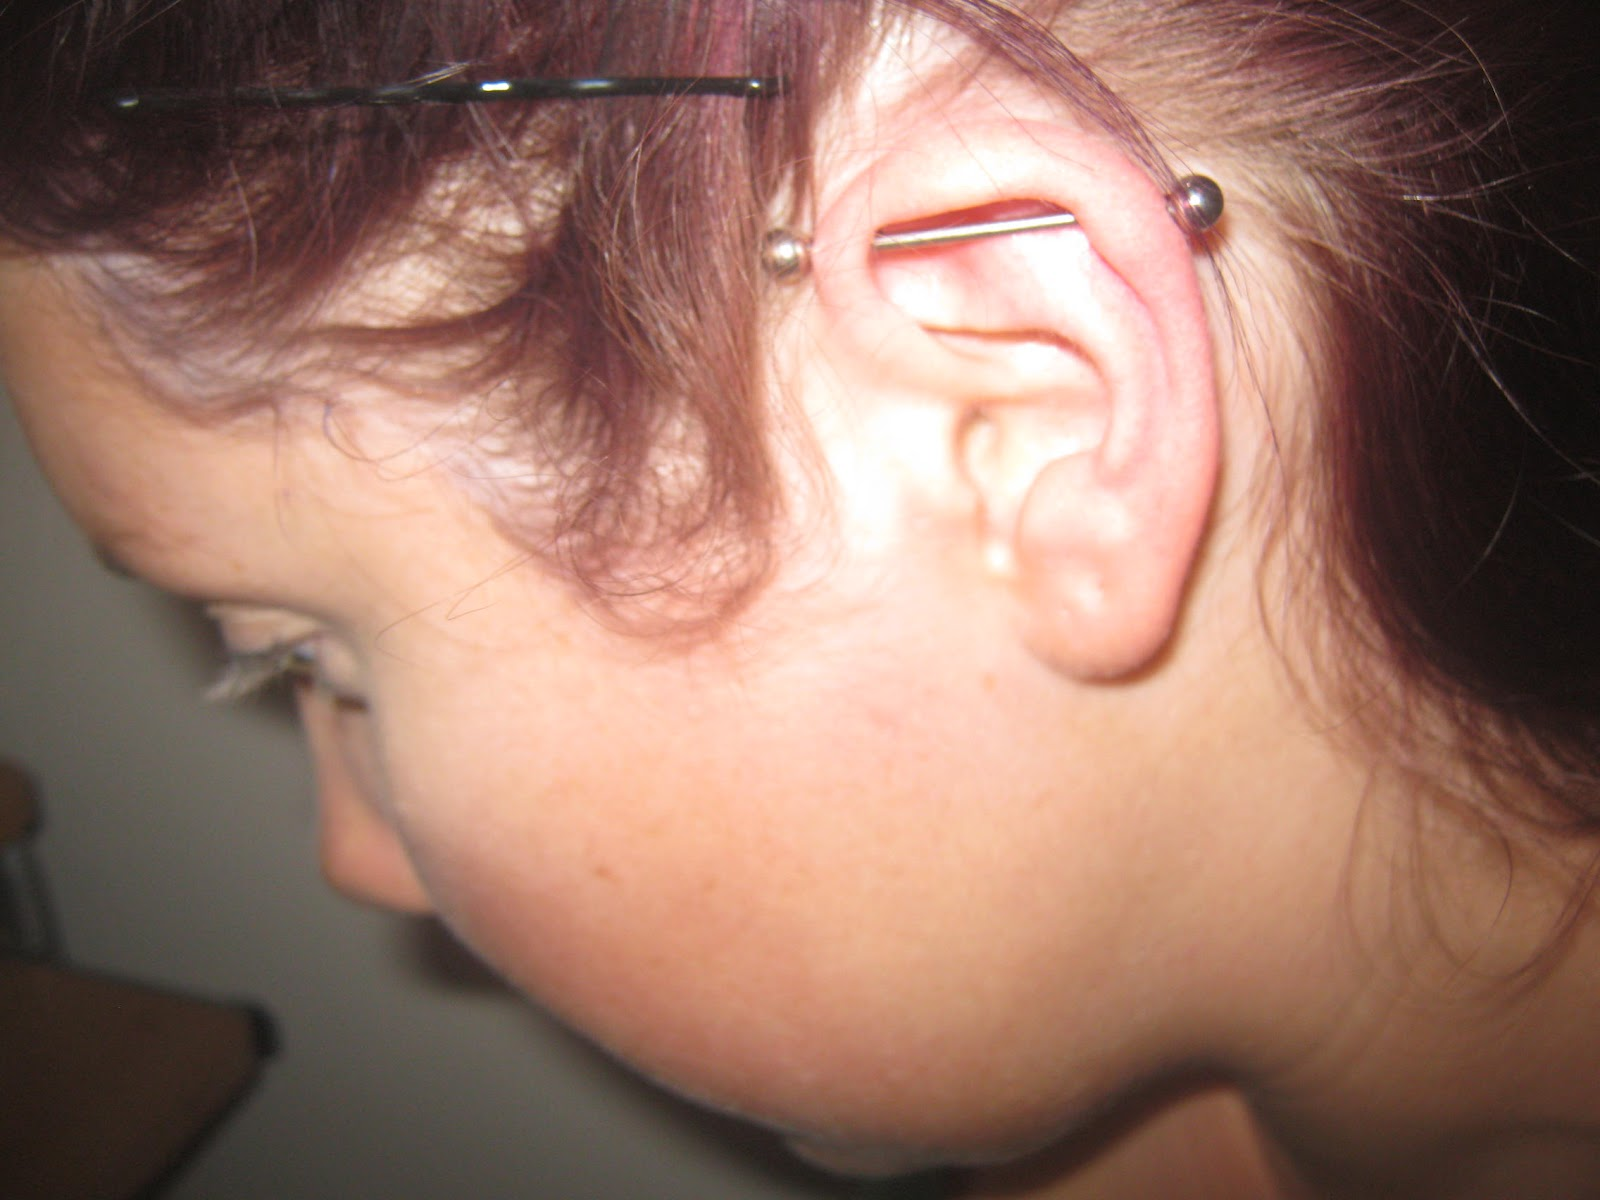 Forum on this topic: How to Clean an Industrial Piercing, how-to-clean-an-industrial-piercing/